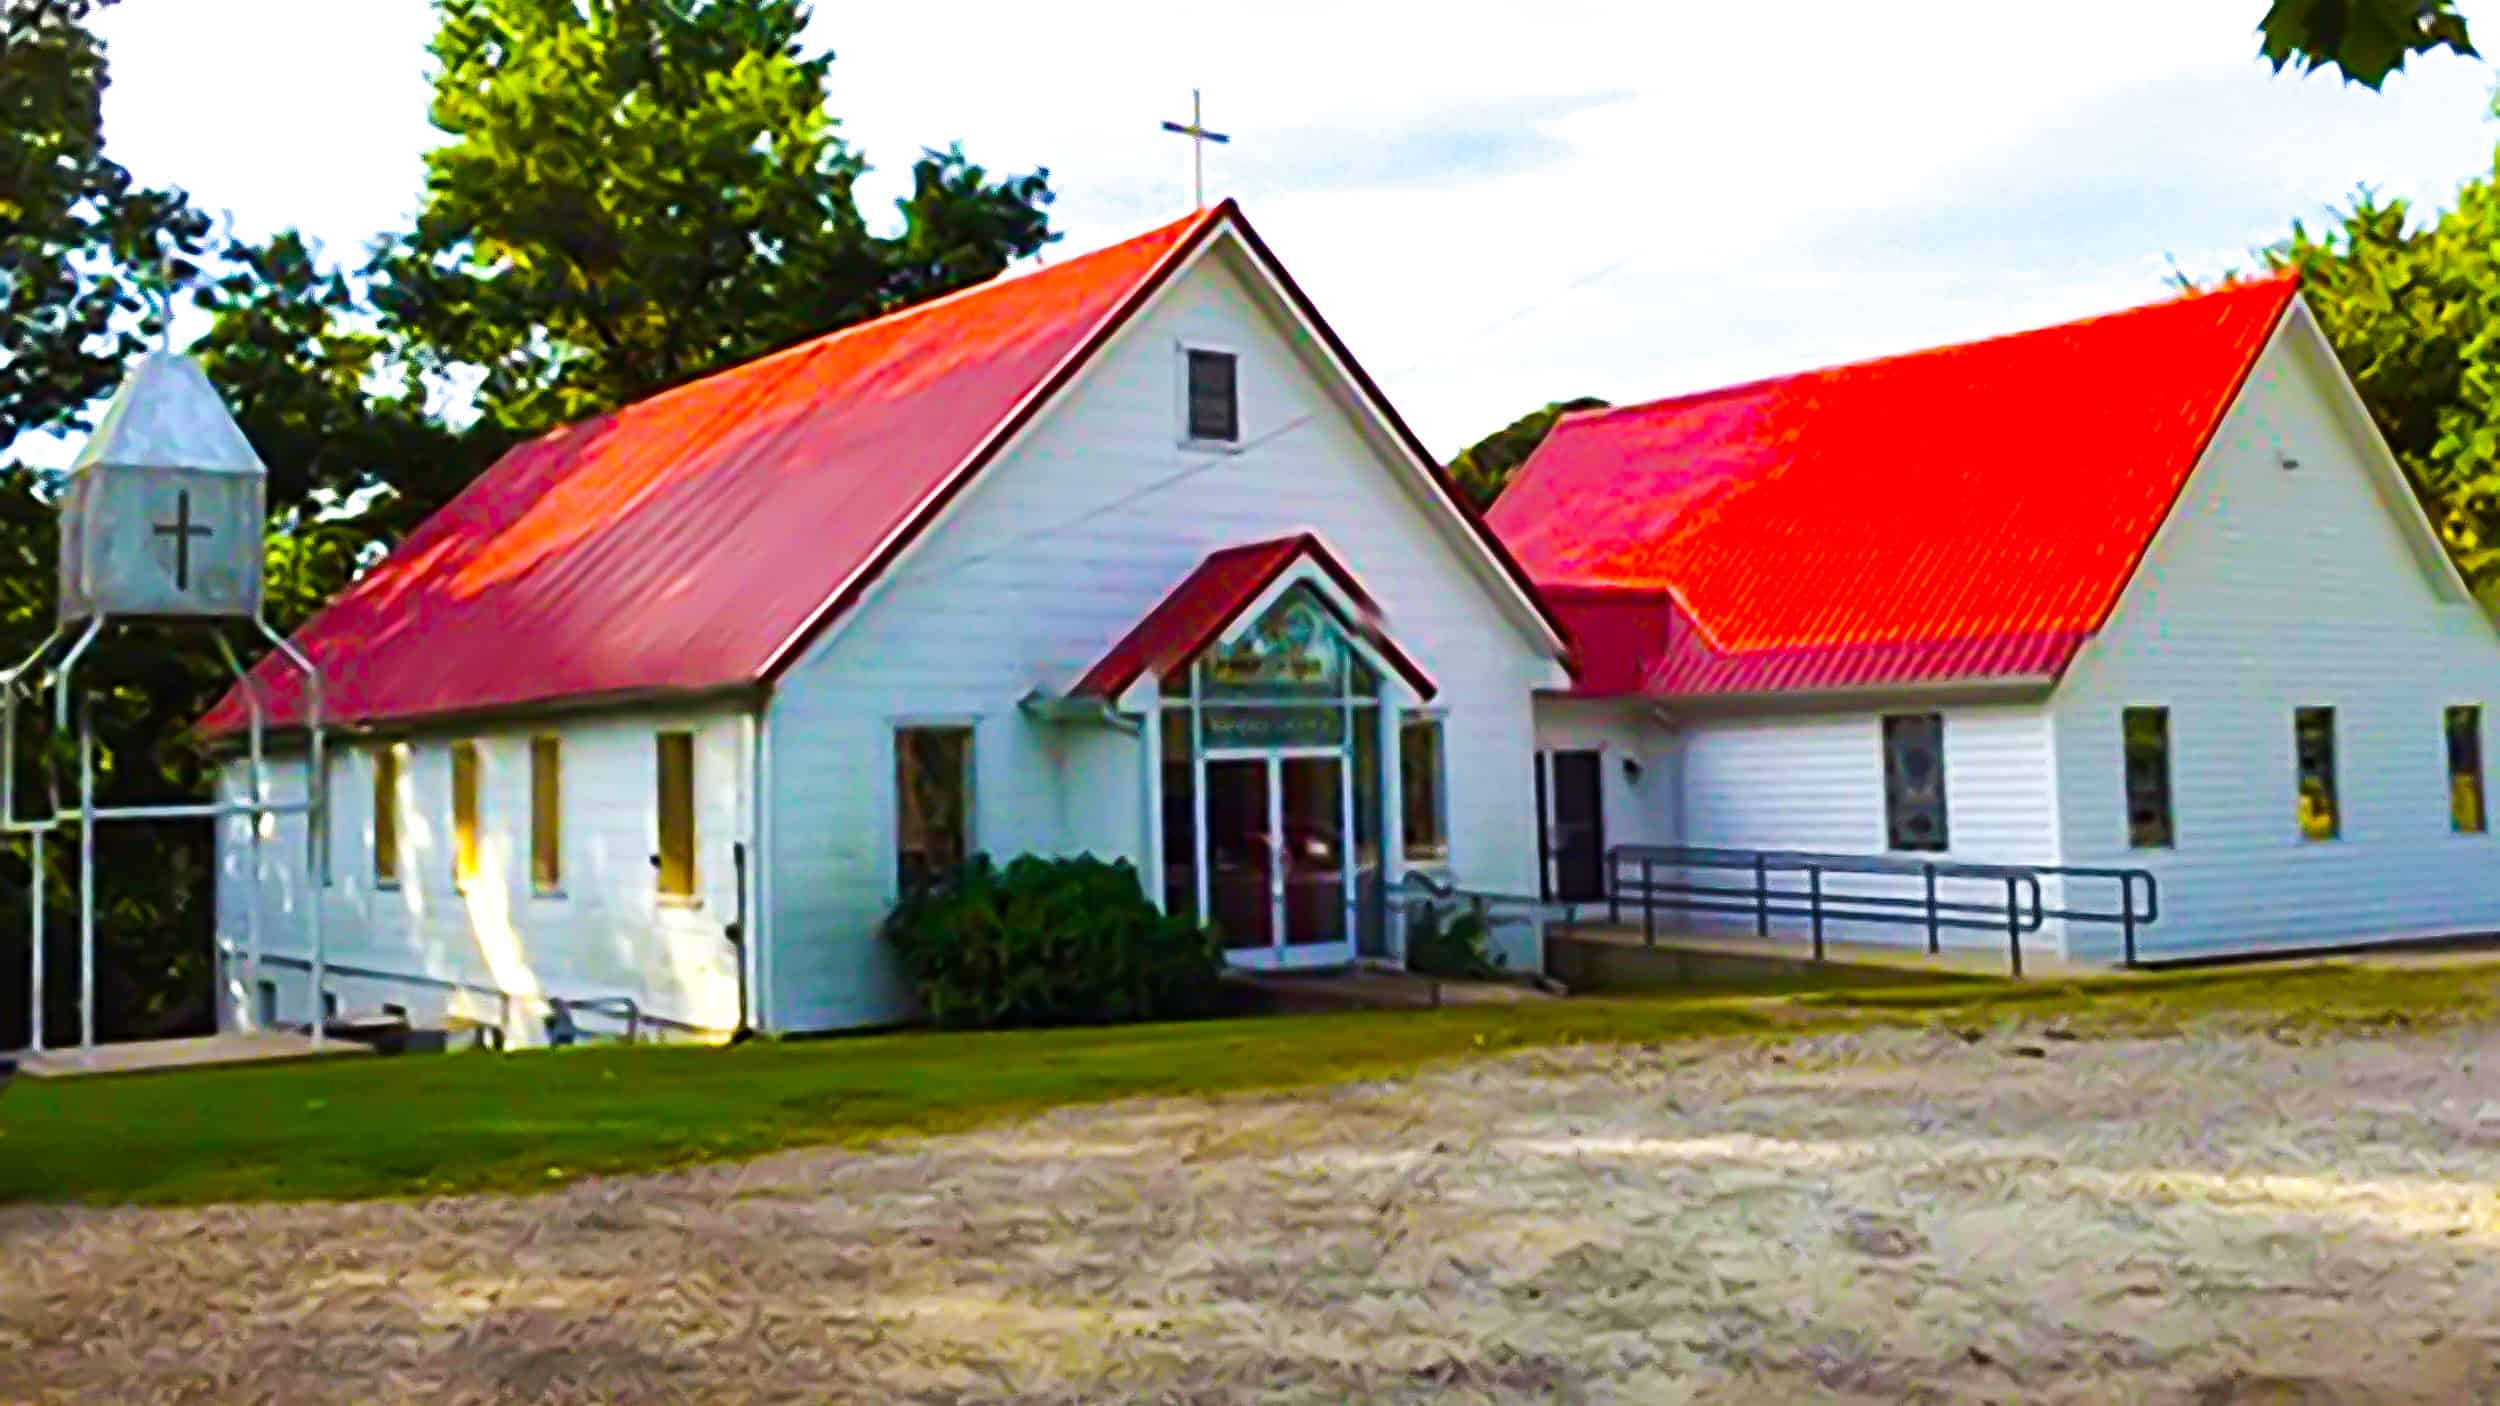 Three Churches in Rural Tennessee Become One in Quarantine